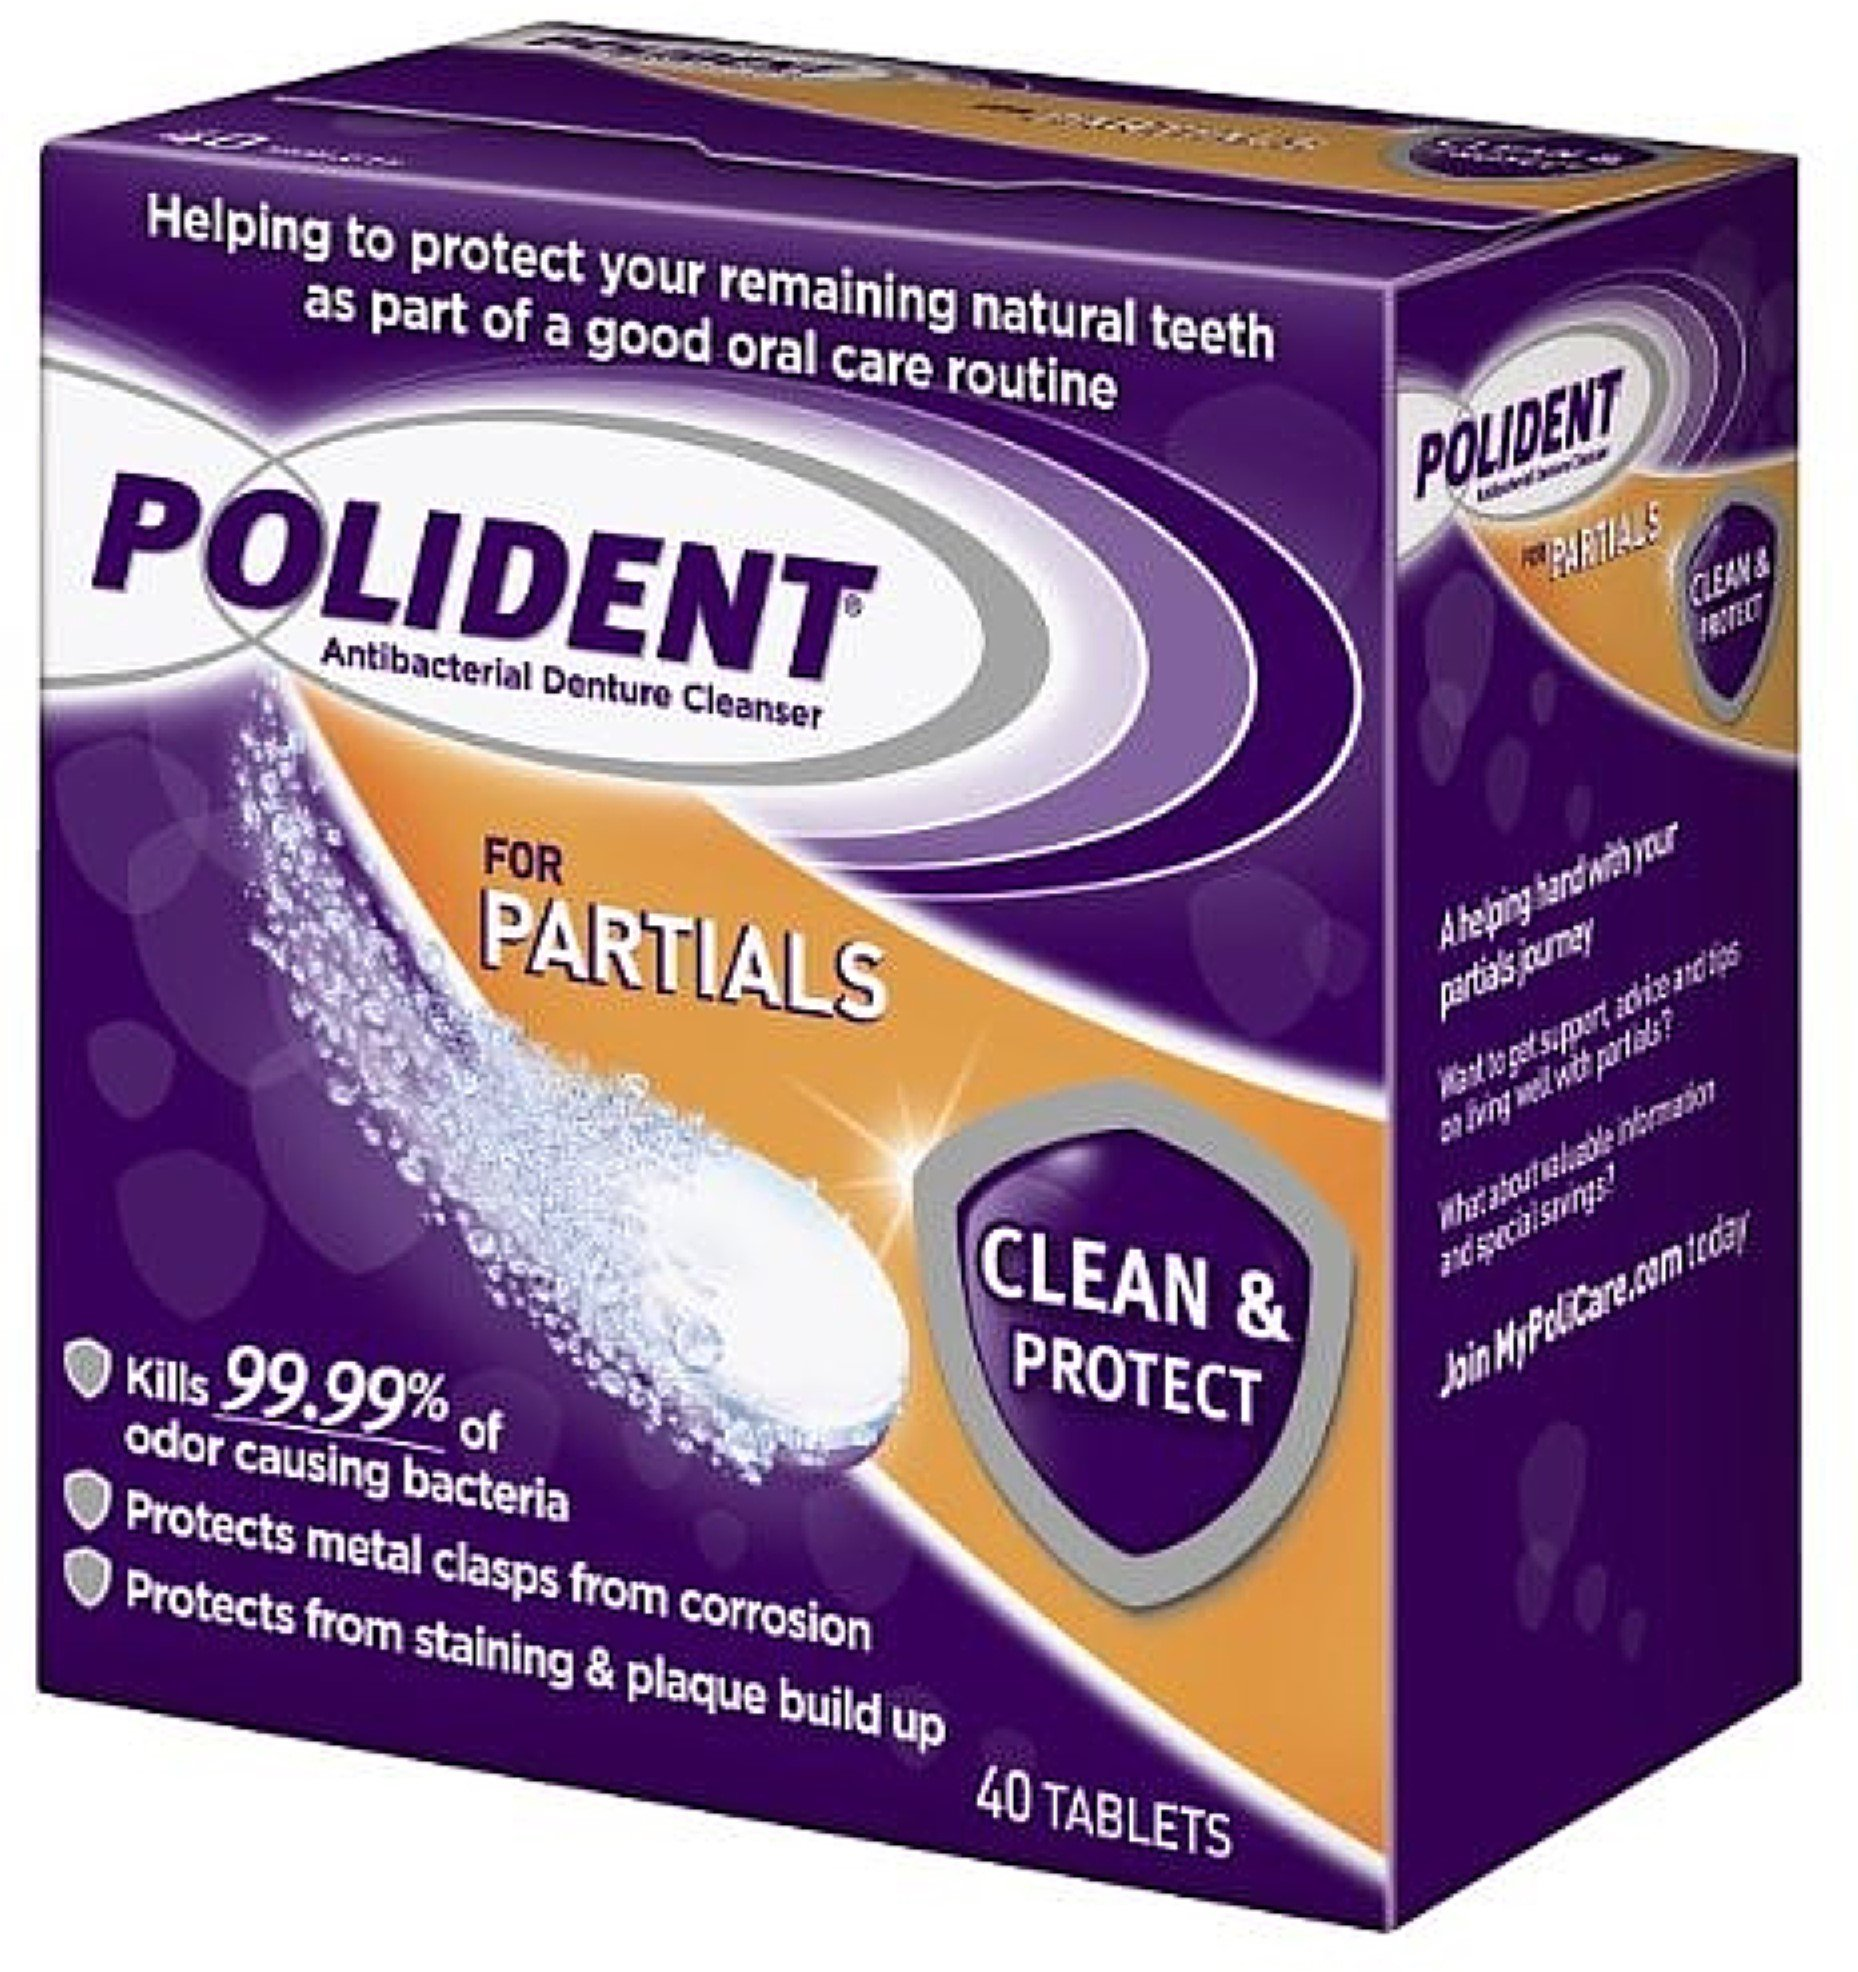 Polident Partials, Antibacterial Denture Cleanser 40 ea (Pack of 7)